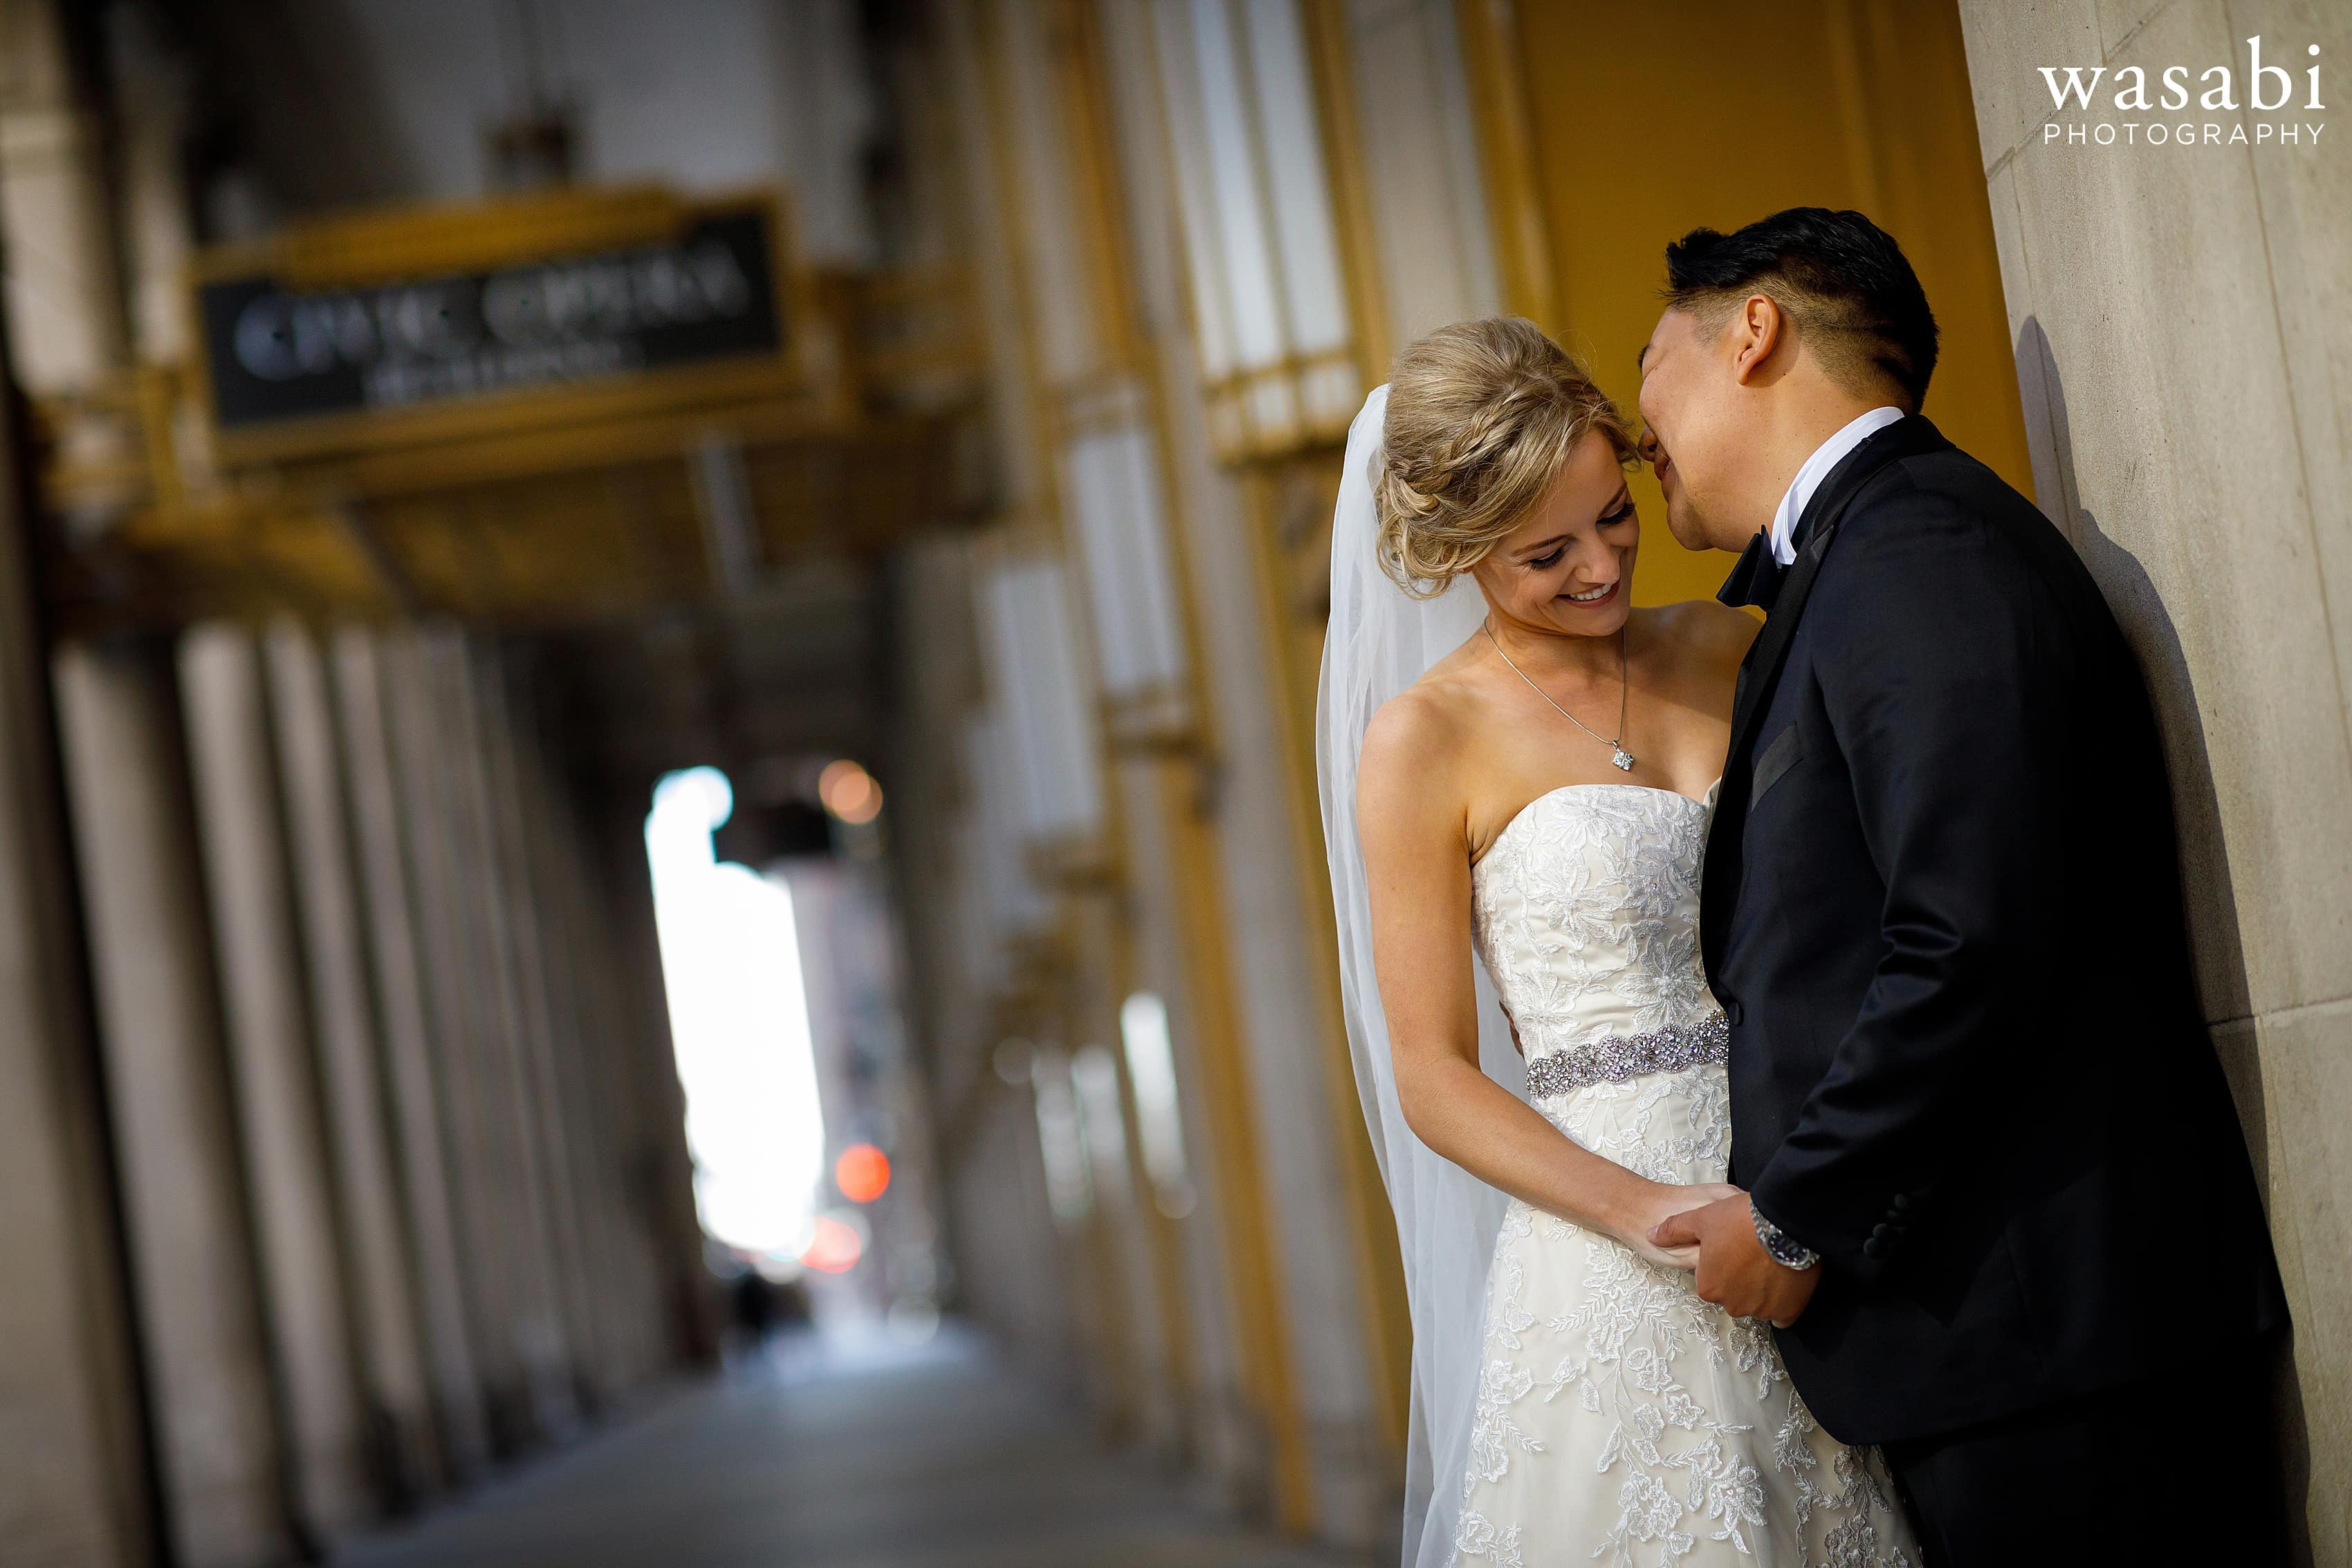 Bride and groom portrait outside Civic Opera Building in Chicago